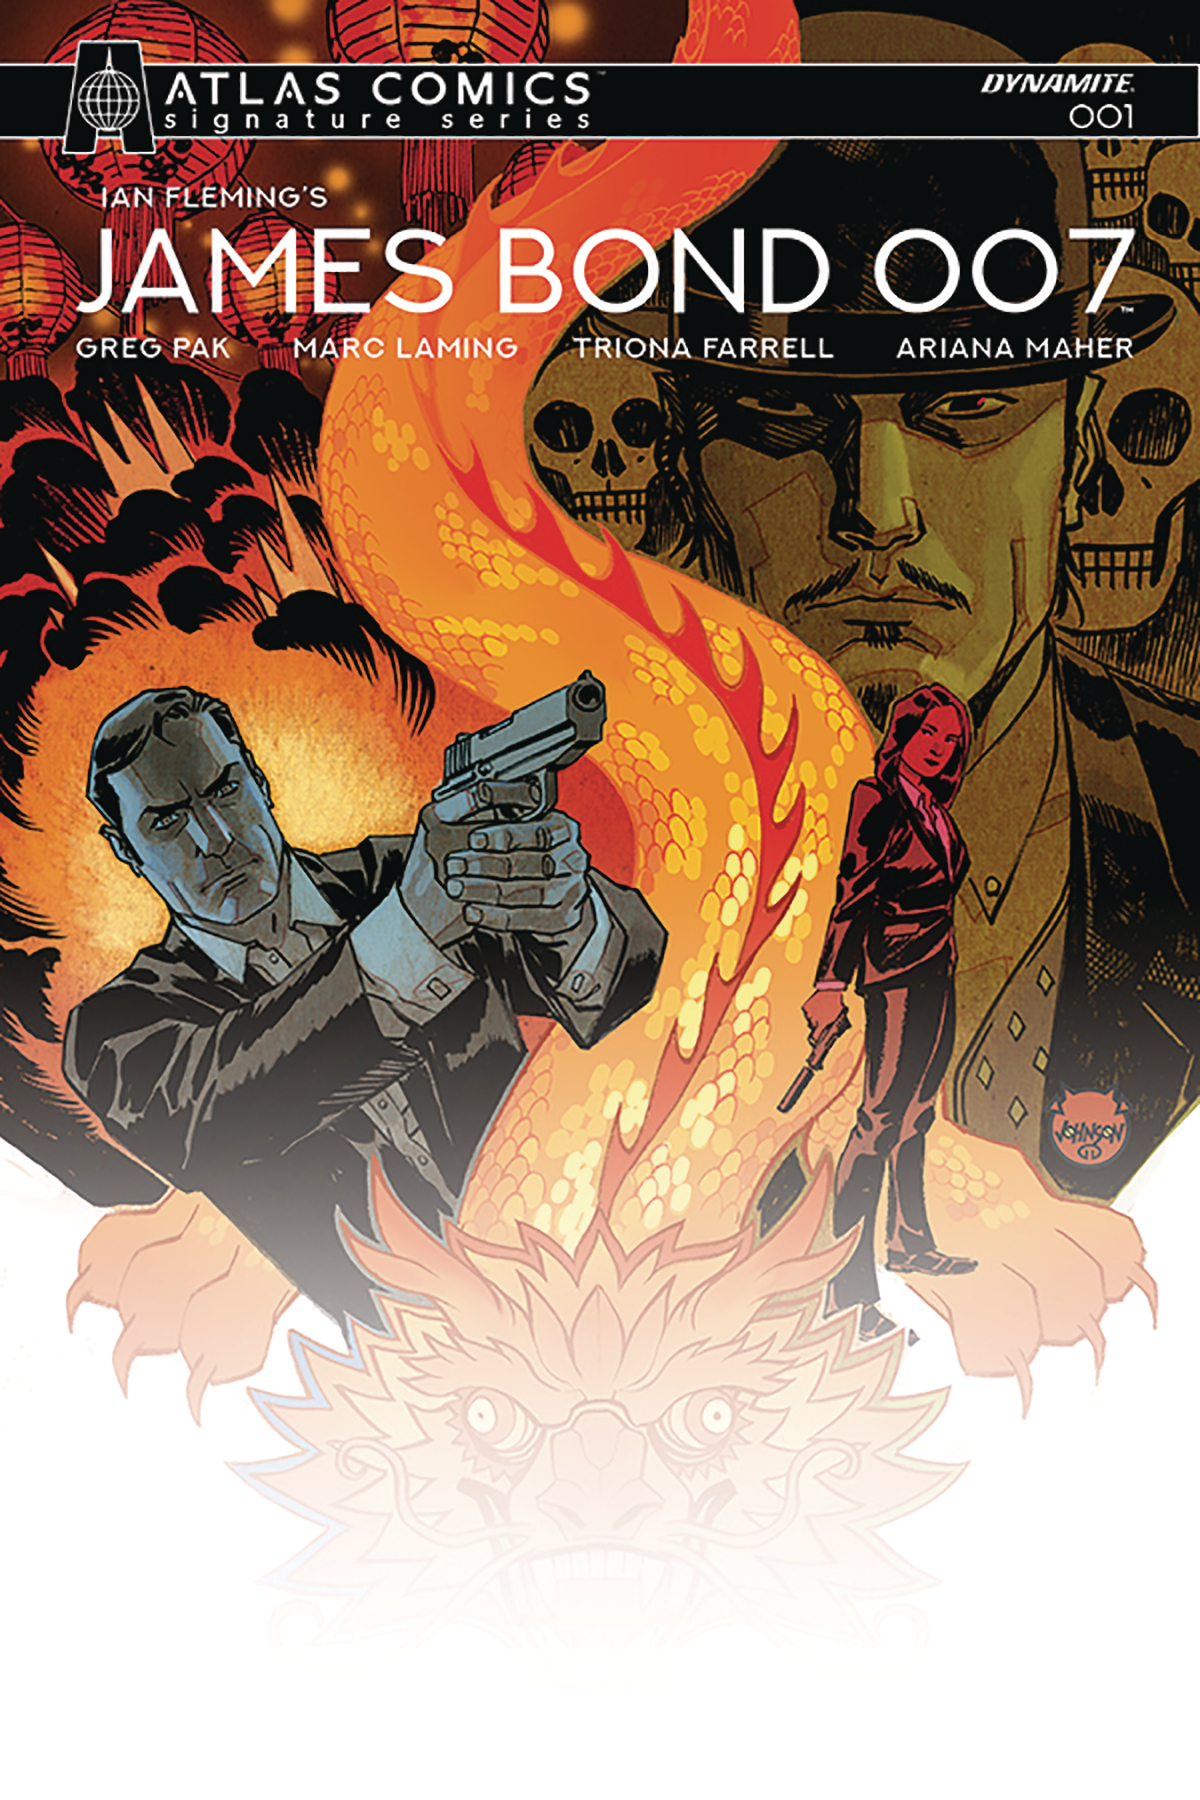 JAMES BOND 007 #1 ATLAS PAK SGN ED